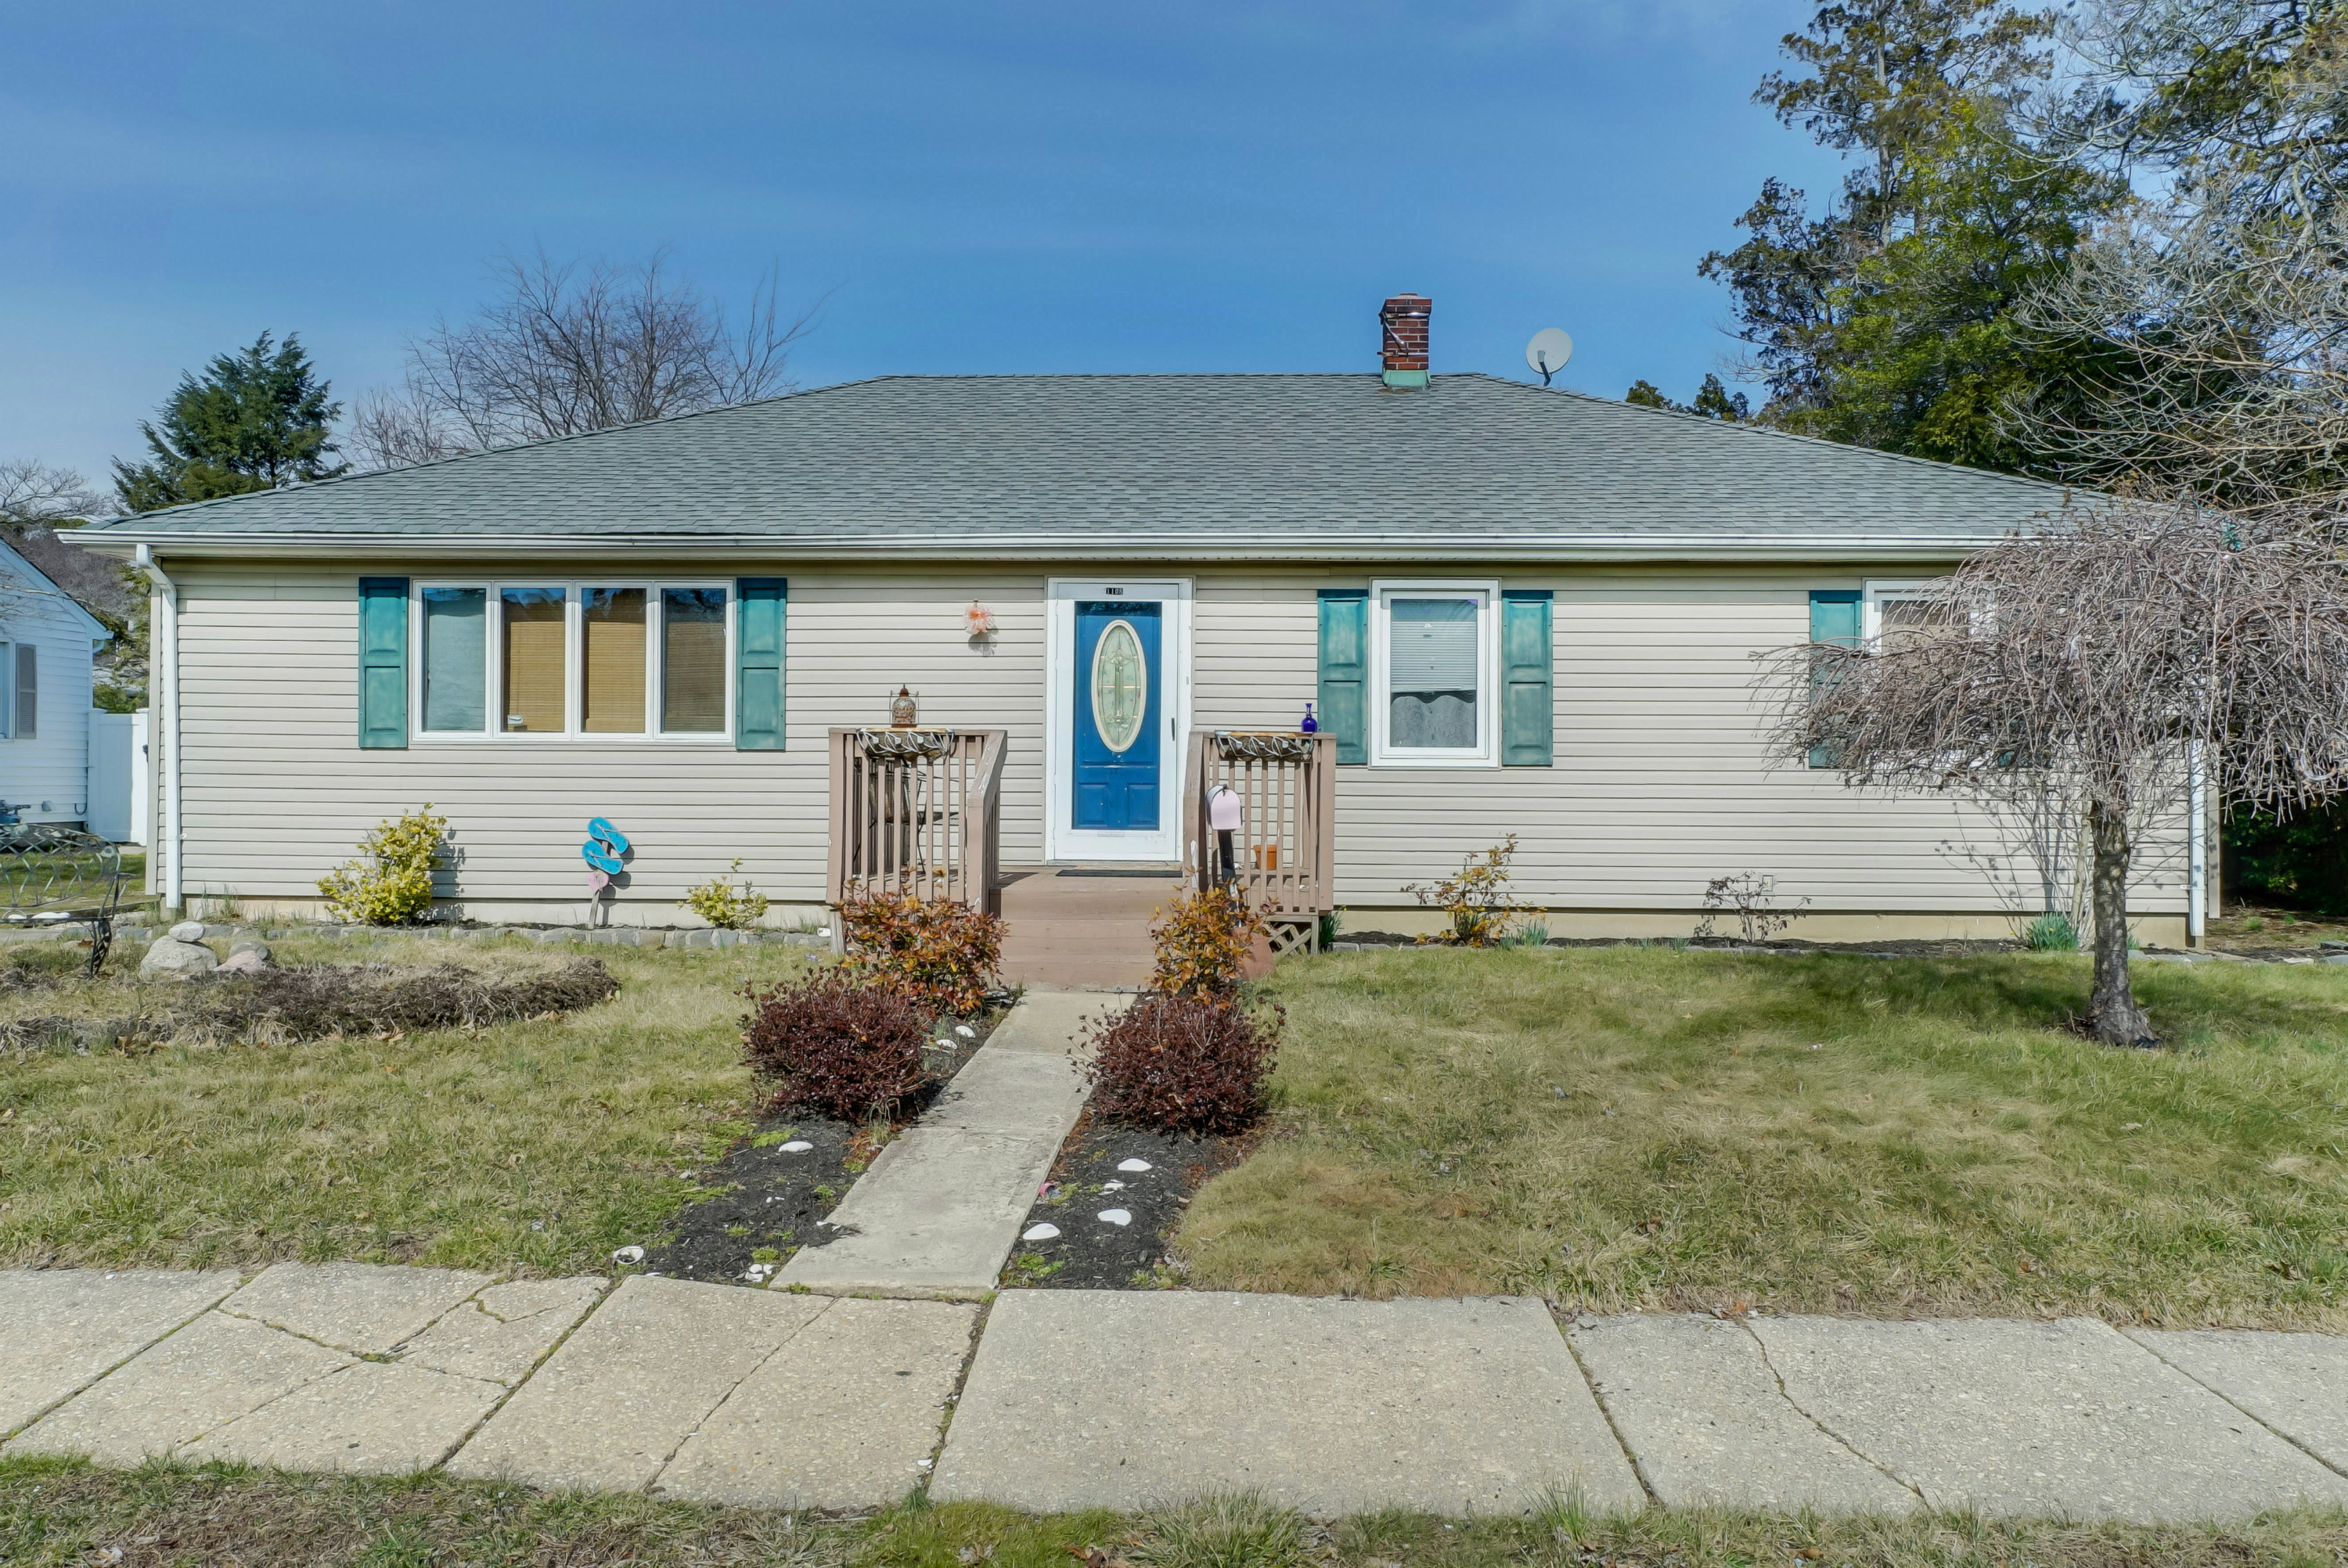 Single Family Home for Sale at Desirable Location 1108 Lakewood Road Manasquan, New Jersey, 08736 United States